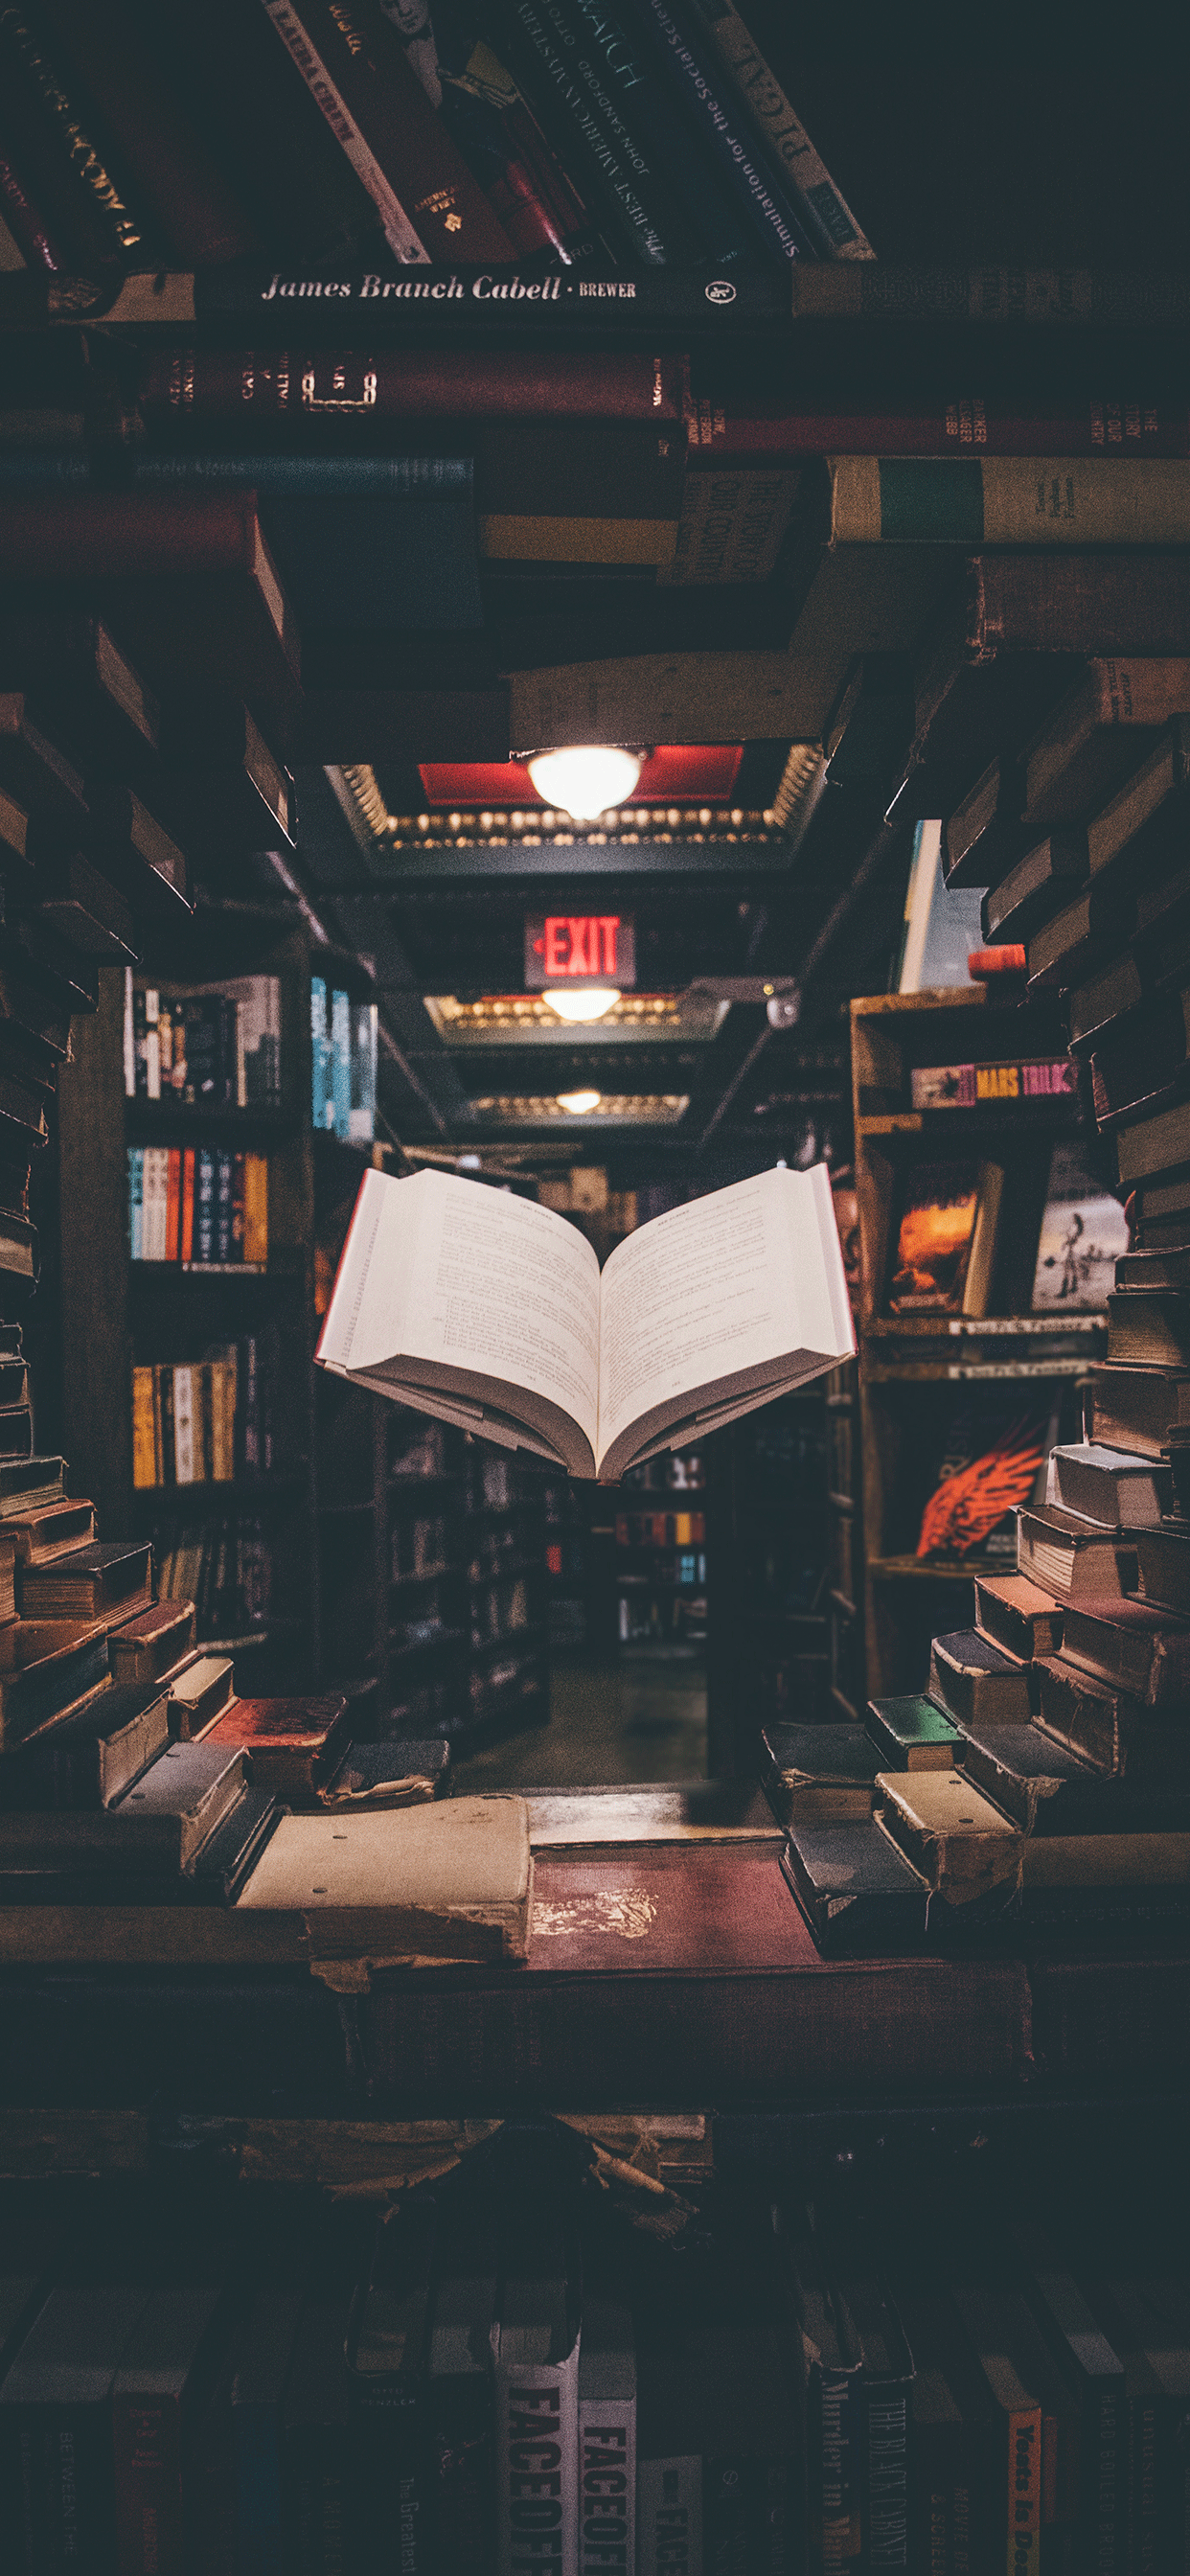 iPhone wallpapers books the last bookstore Fonds d'écran iPhone du 08/05/2019